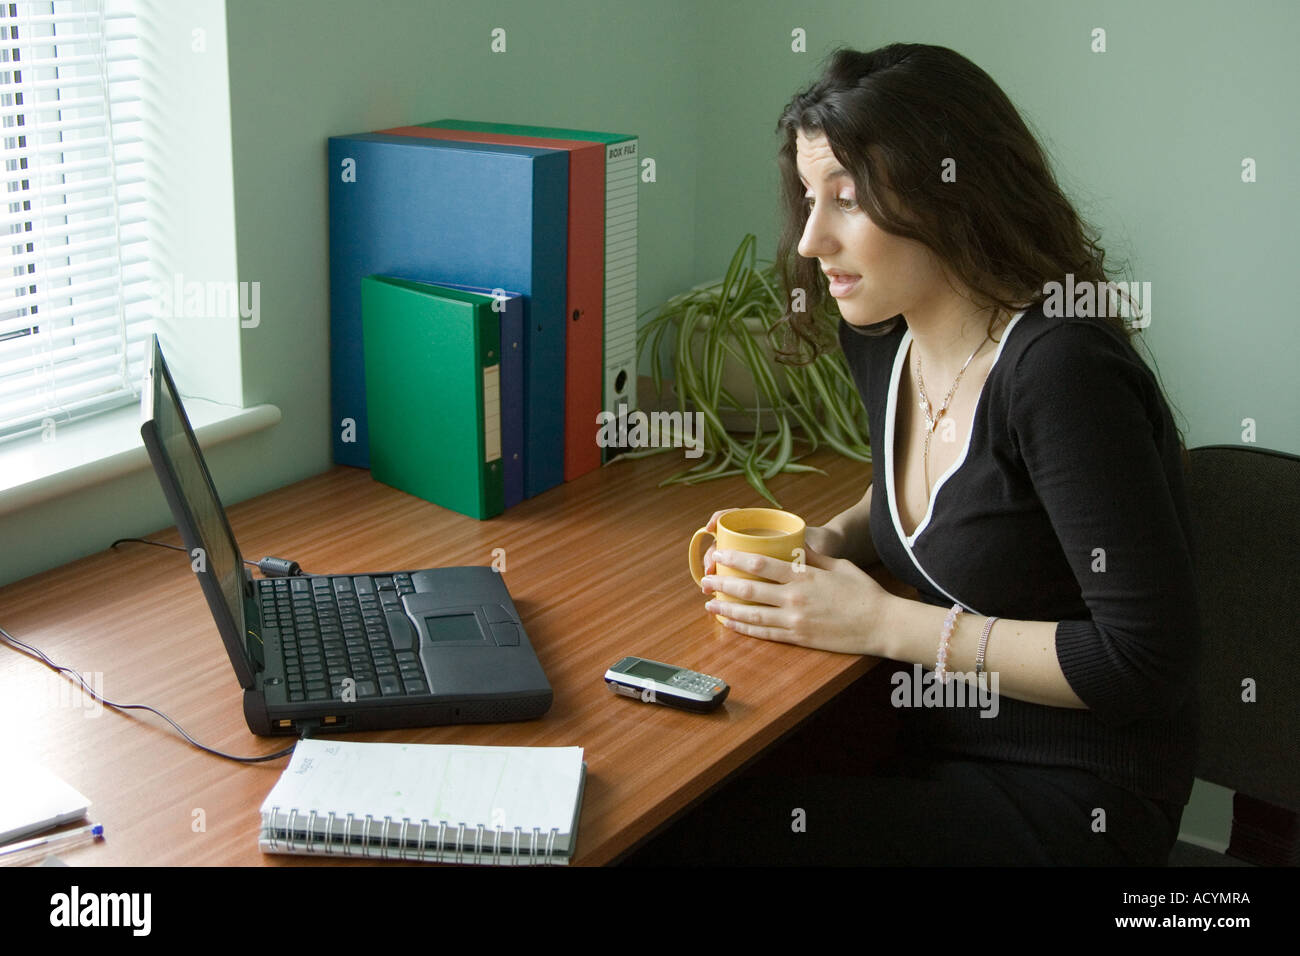 A worried woman having problems using a computer - Stock Image